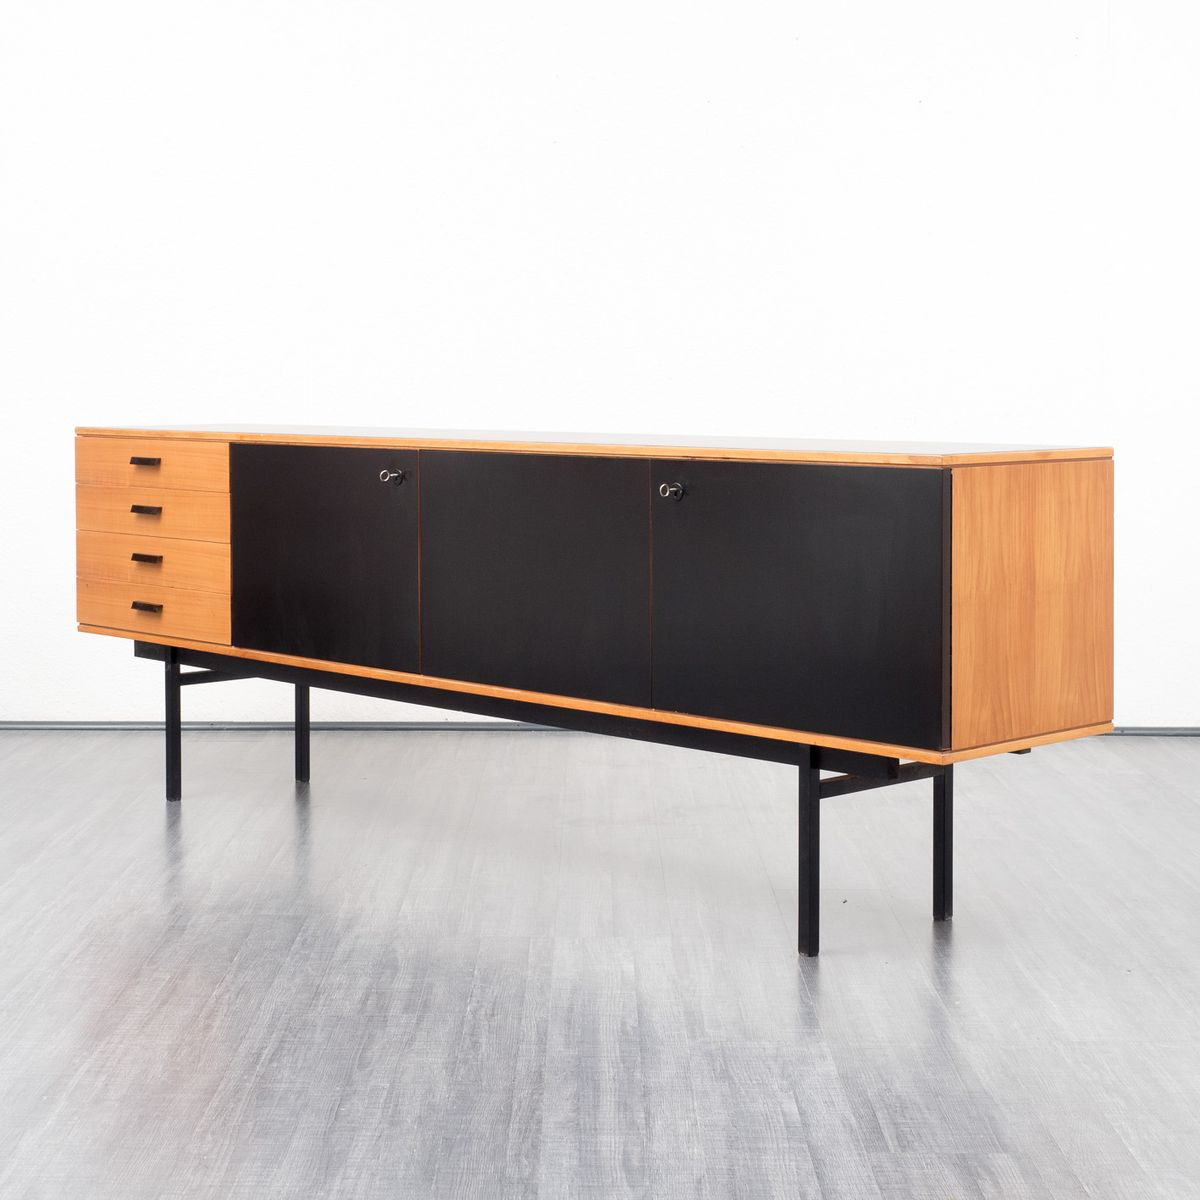 schwarz lackiertes sideboard aus kirschholz 1960er bei pamono kaufen. Black Bedroom Furniture Sets. Home Design Ideas